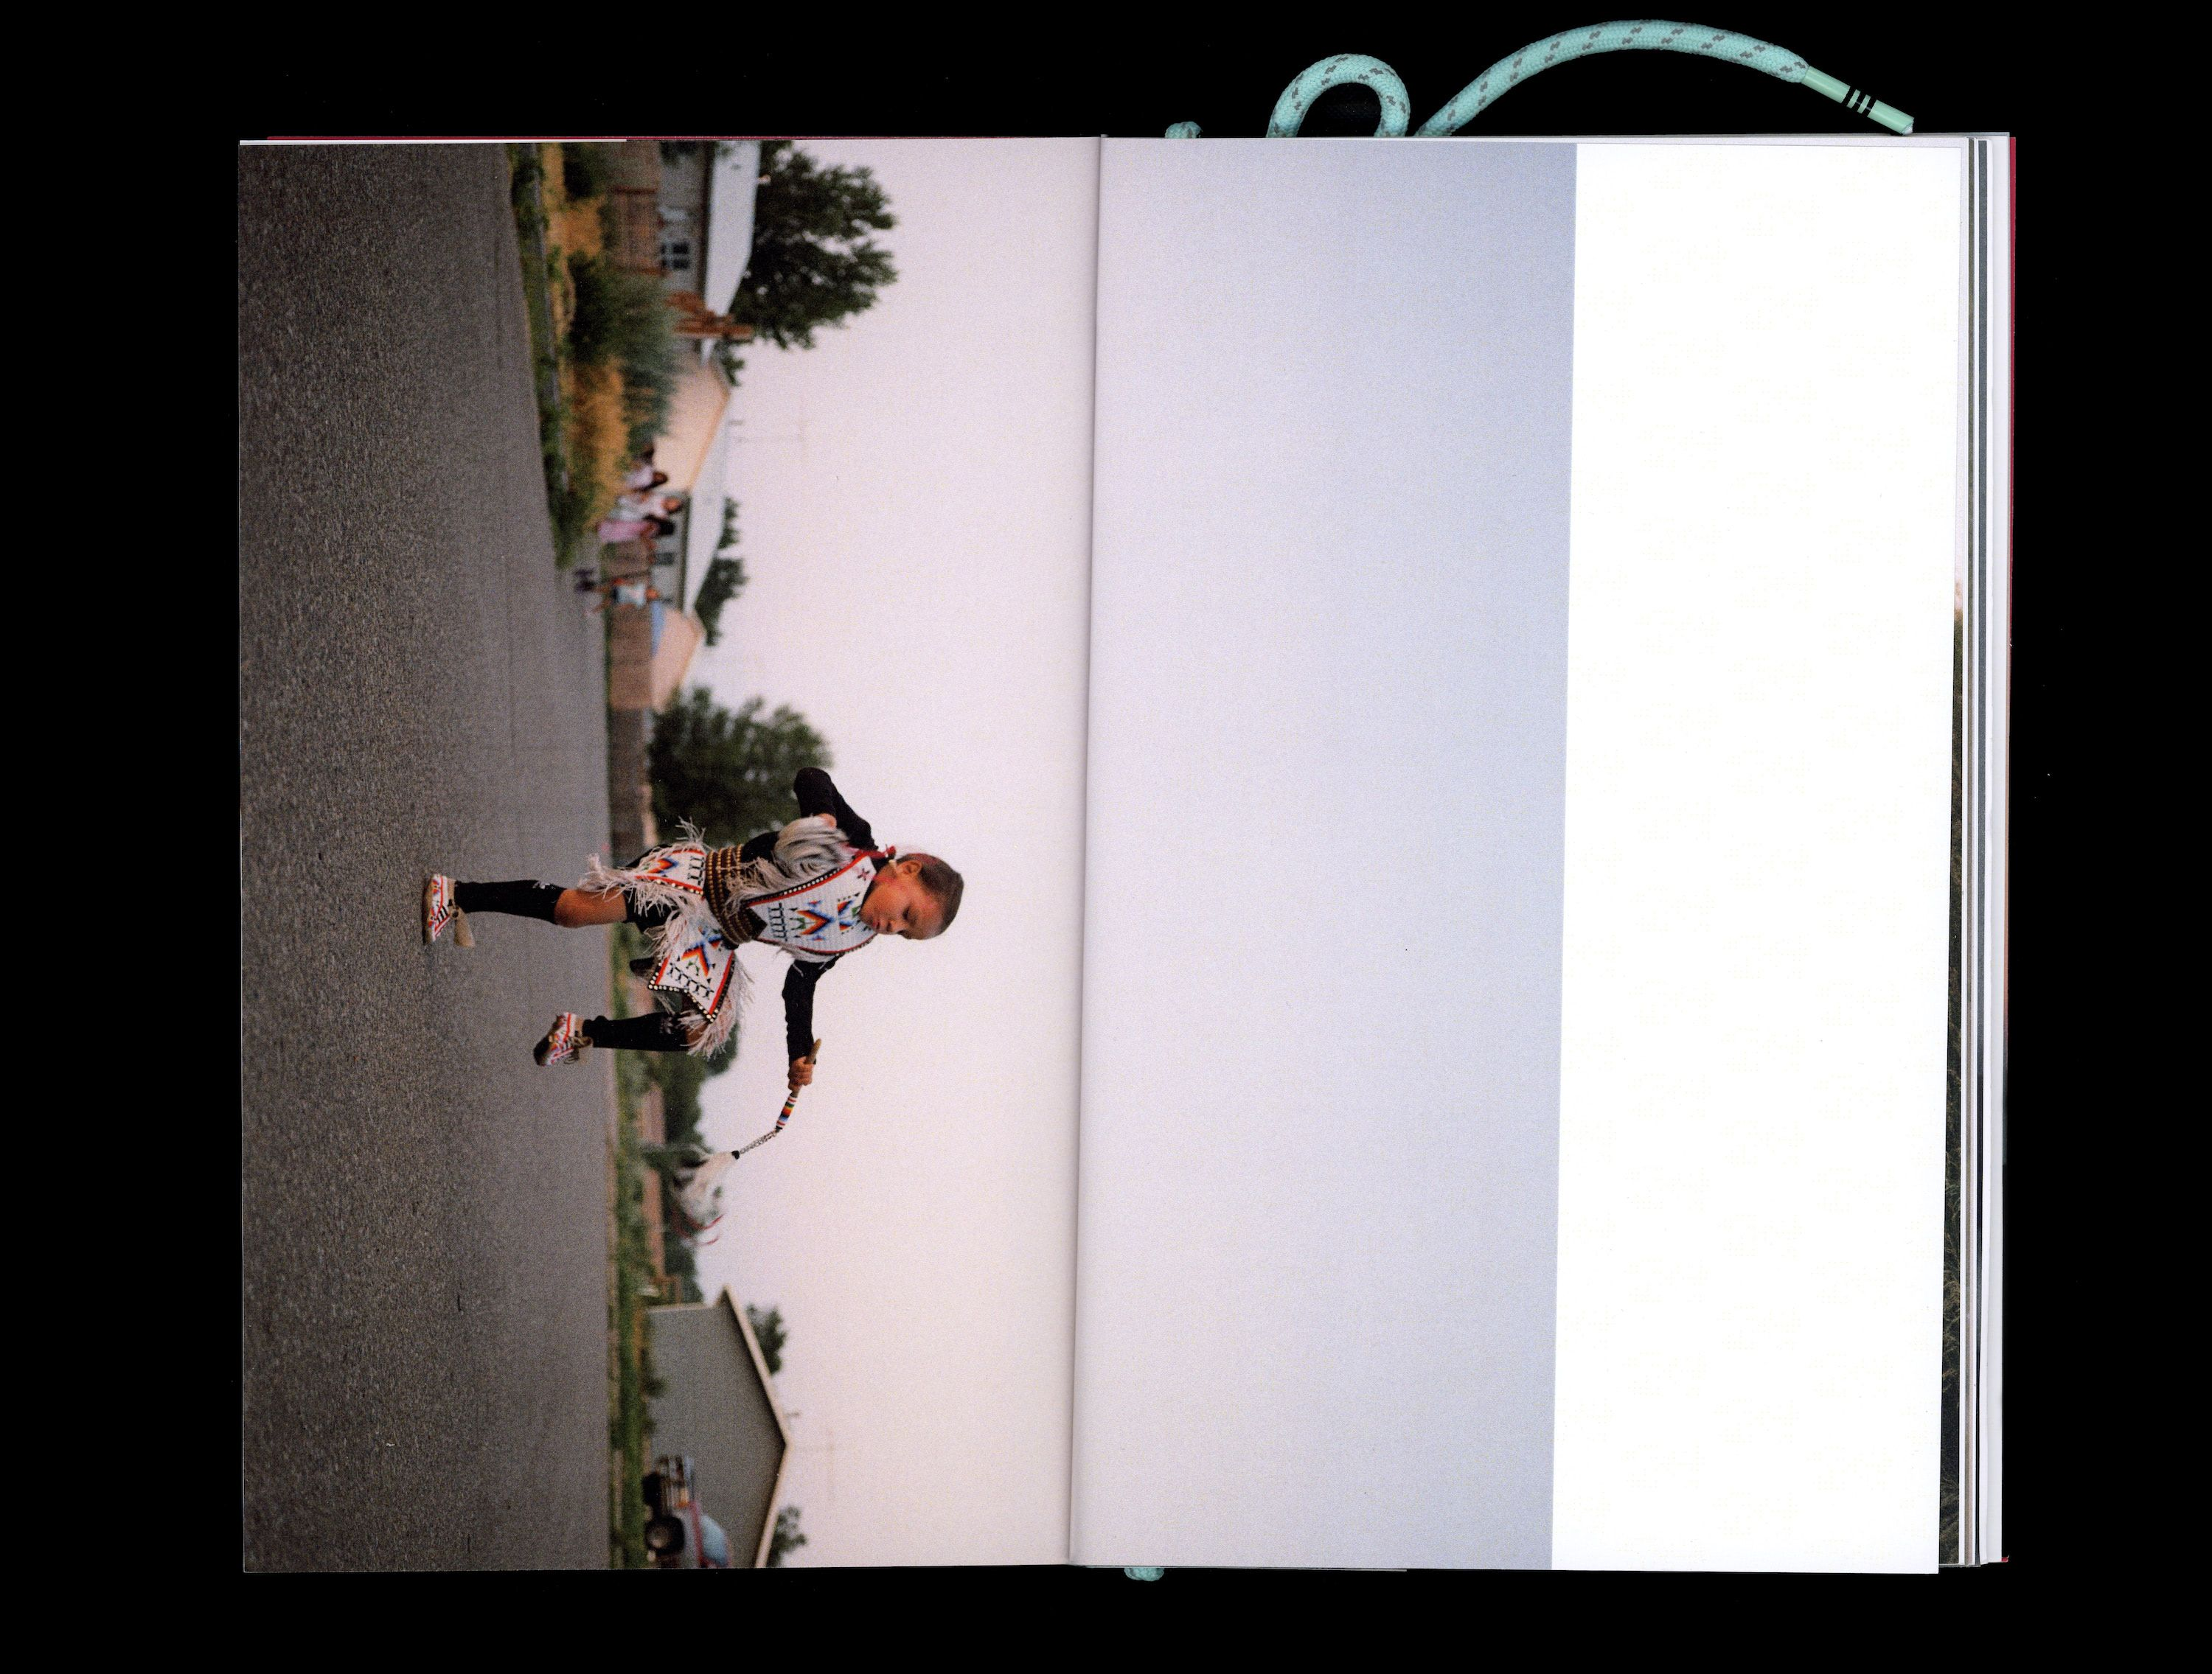 Photograph in book of Tokala Little Sky dancing in road wearing traditional Native clothing